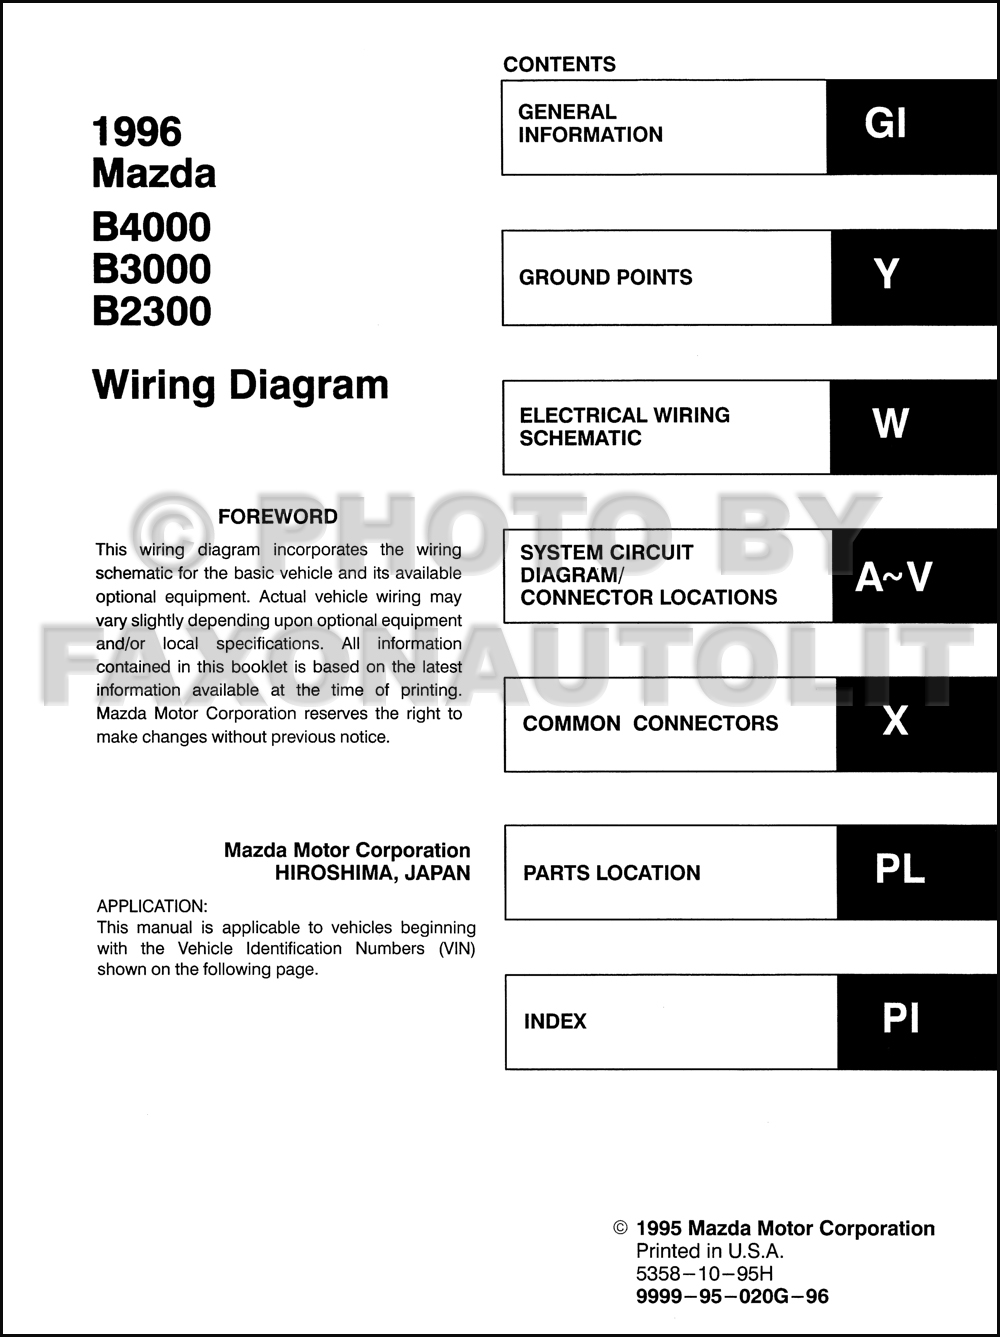 1996 mazda b4000 b3000 b2300 pickup truck wiring diagram manual original rh faxonautoliterature com mazda b4000 fuse box diagram mazda b4000 fuse box diagram